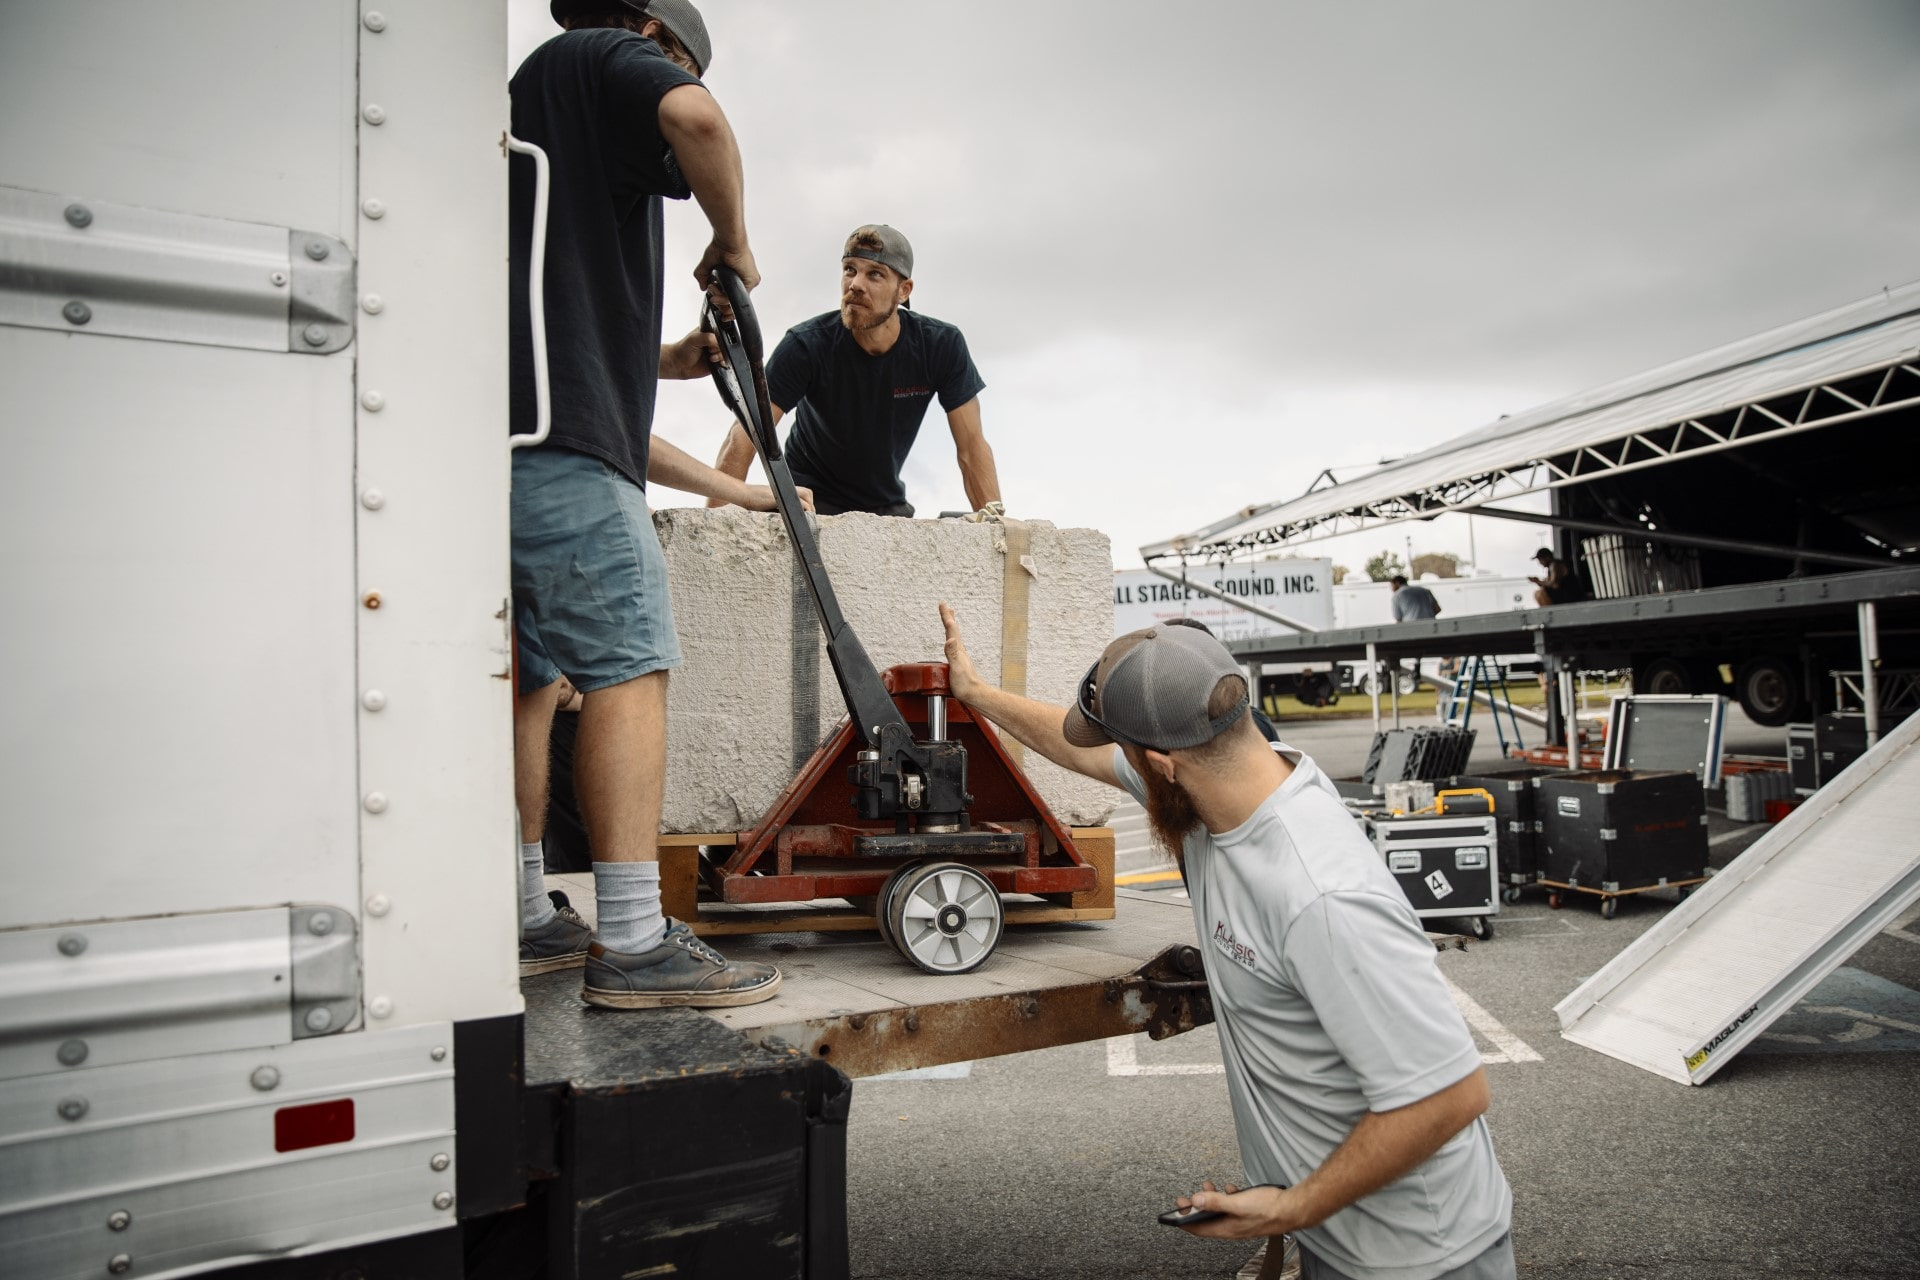 event staff unloads concrete ballast from the box truck